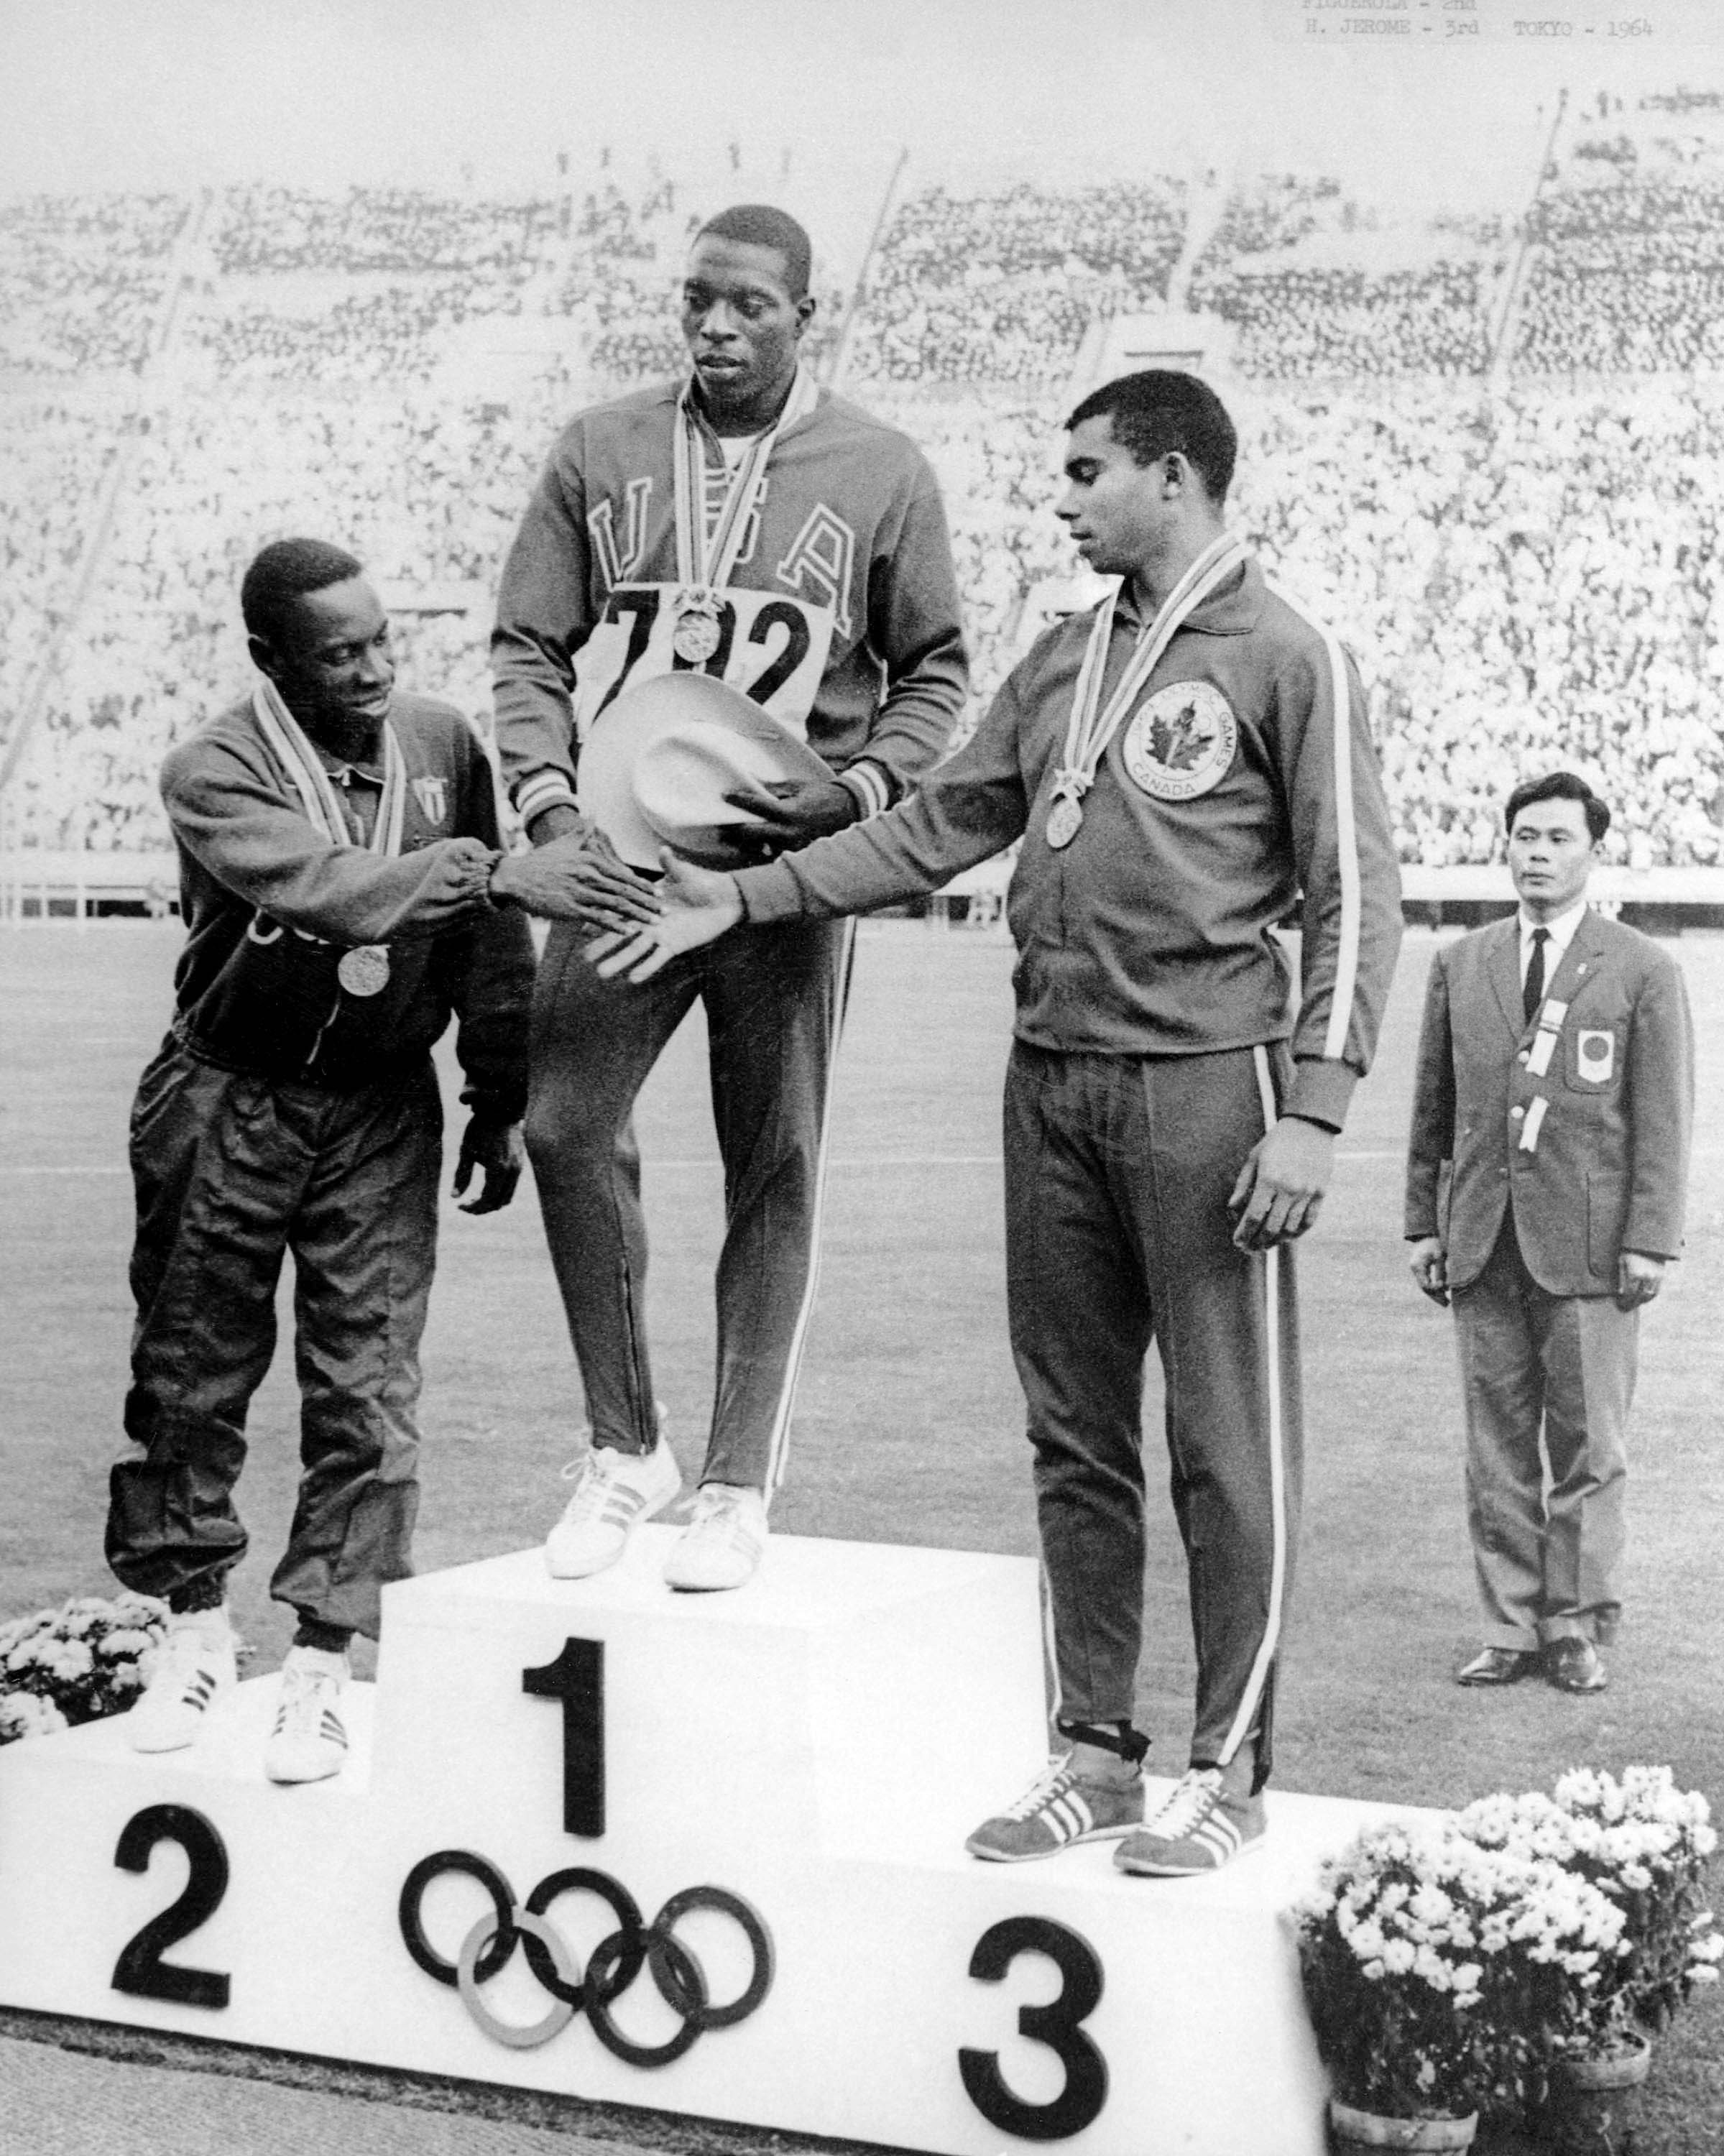 Harry Jerome (right) celebrates his bronze medal win in the 100m athletics event at the 1964 Tokyo